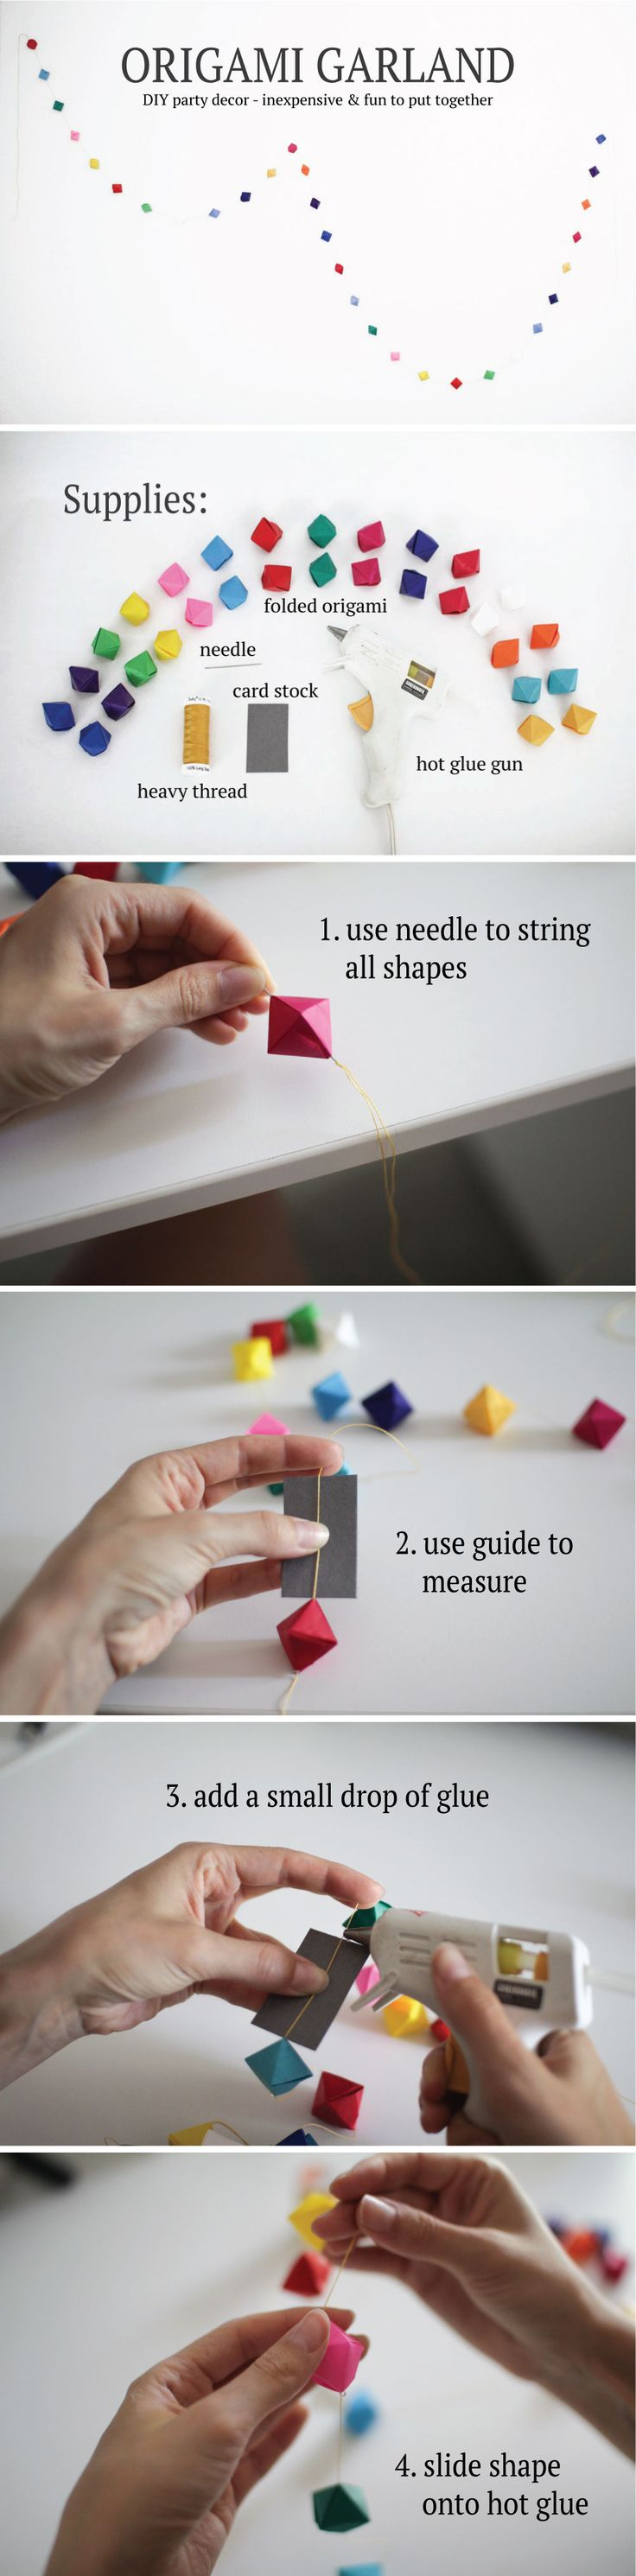 Follow this simple tutorial to create your own origami party garland! Great for birthday parties and special events. Customize with your own colors and origami shapes for fun, inexpensive decor!